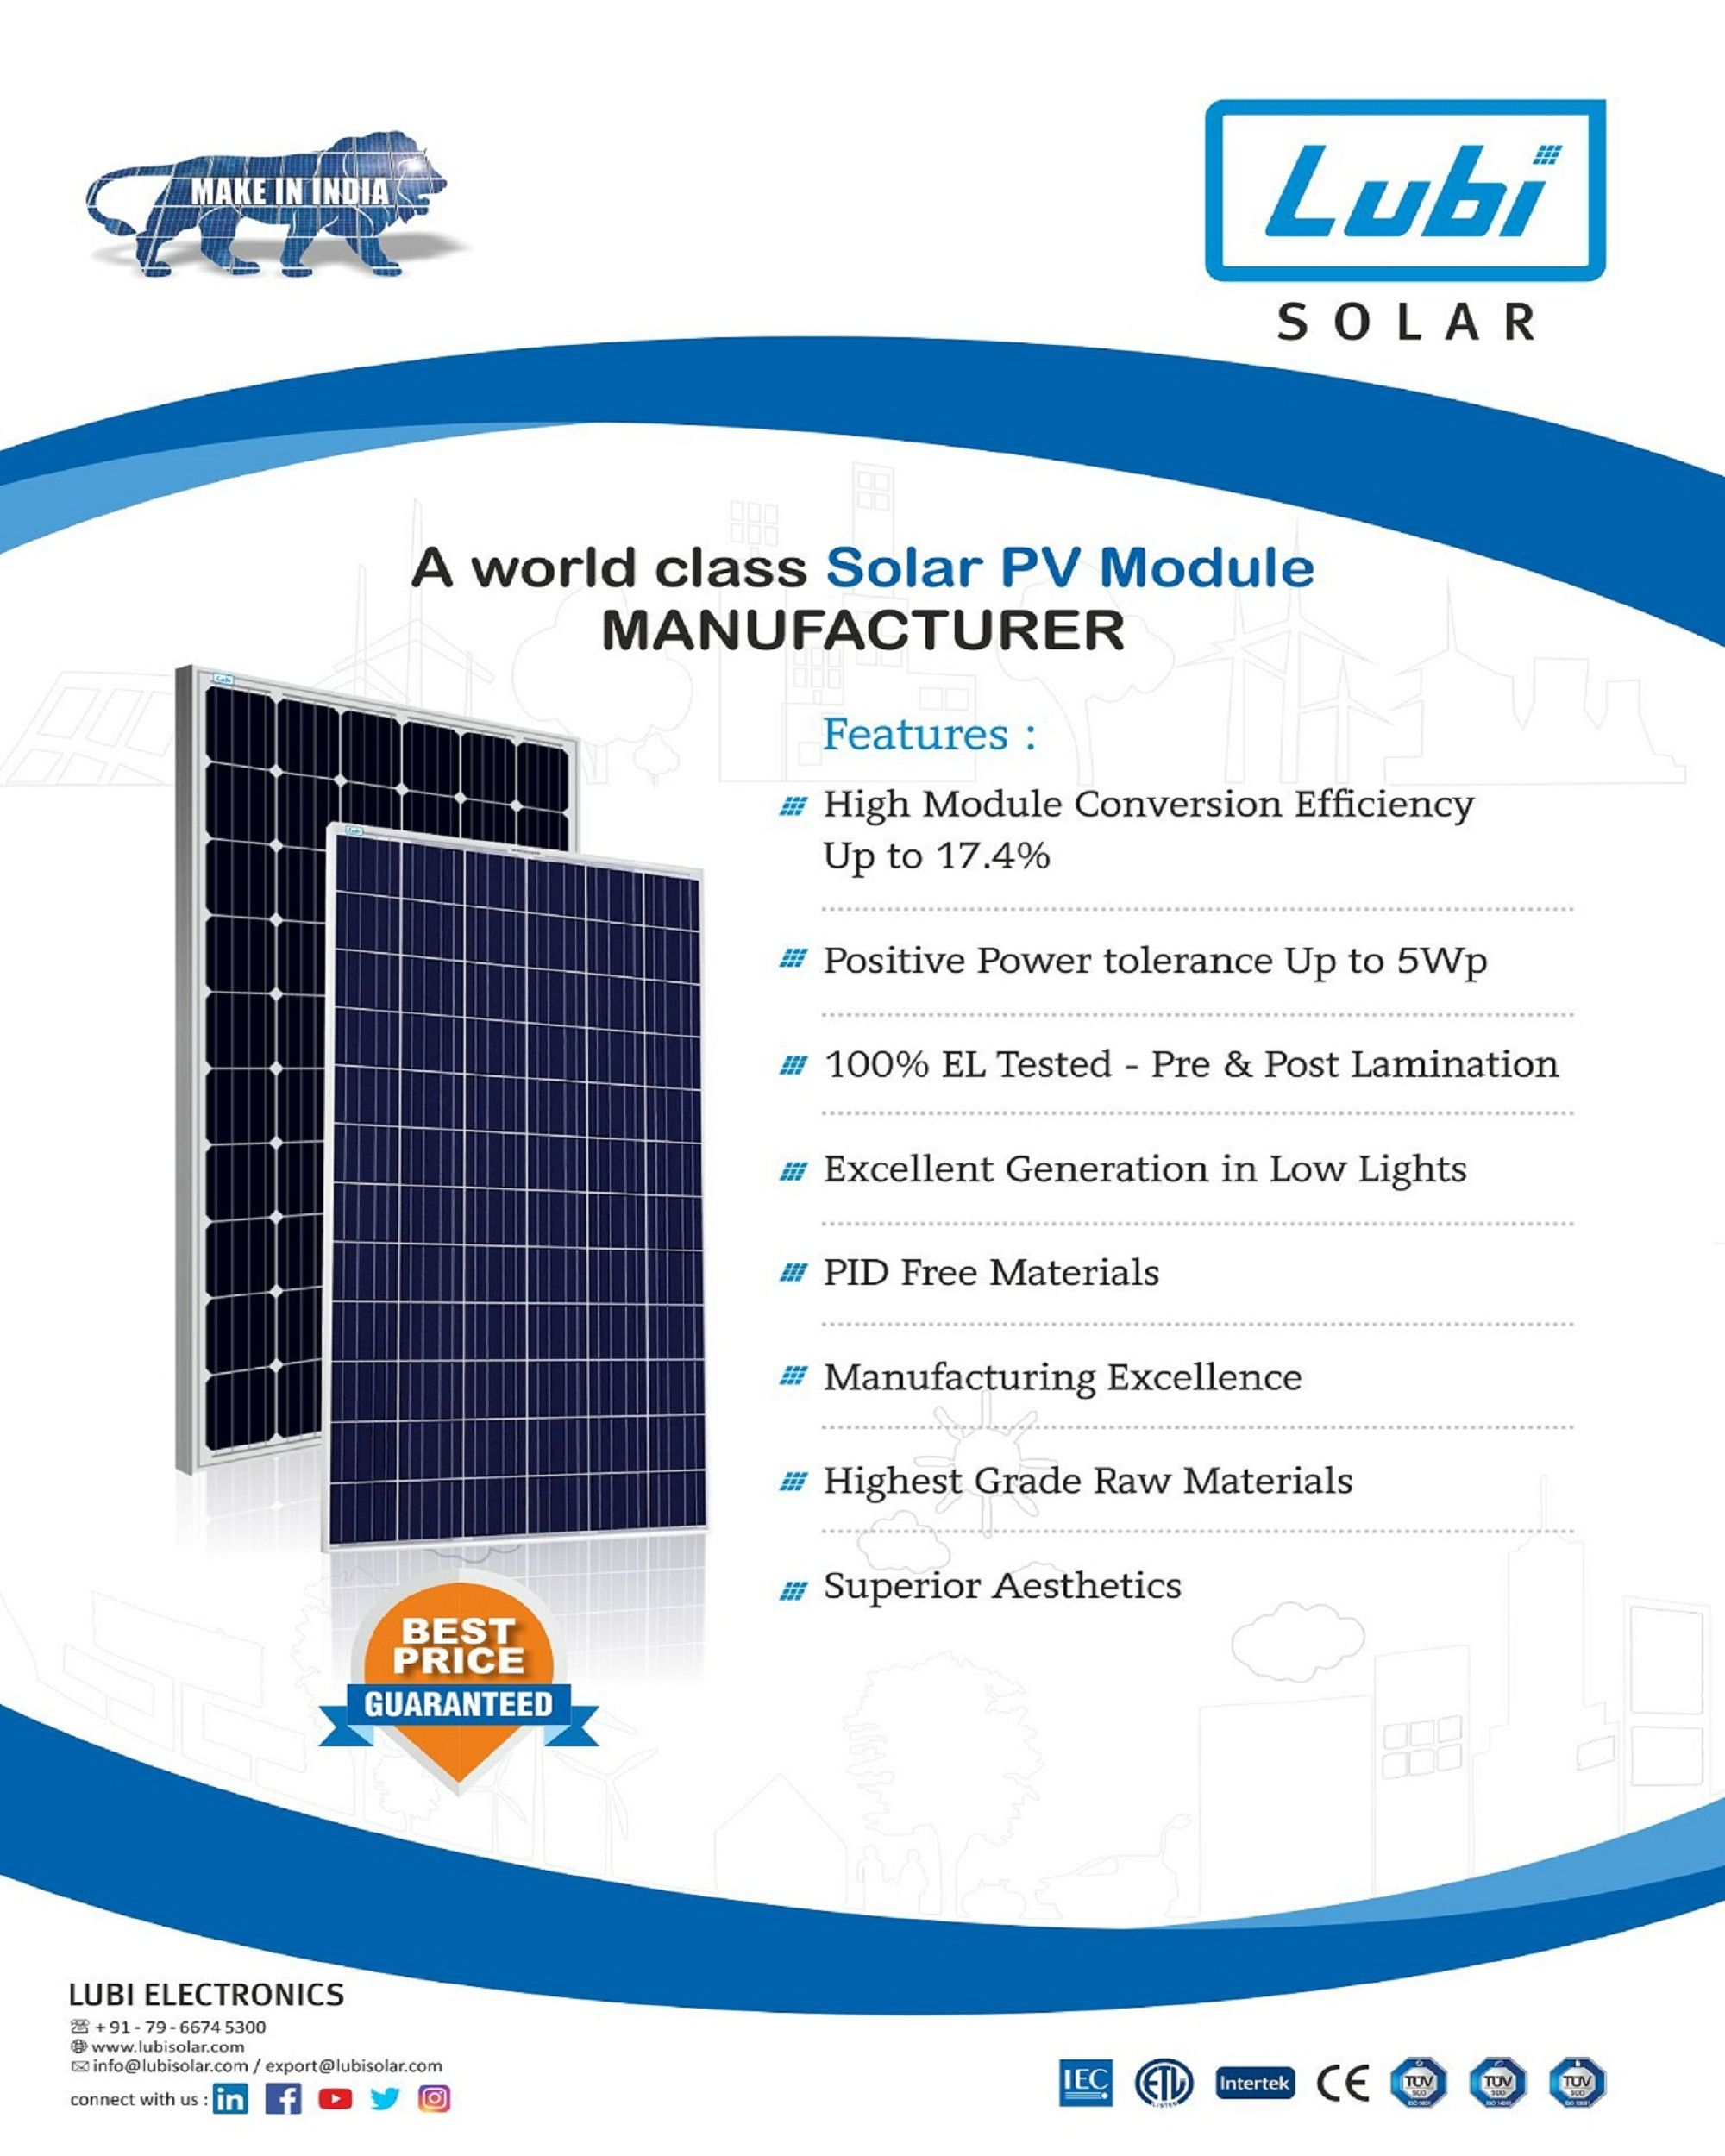 Lubi Solar Manufacturing High Efficient Solar Panel In India Well Known Brand For Solar Power Panel Solar Solar Power Panels Solar Panel System Solar Panels